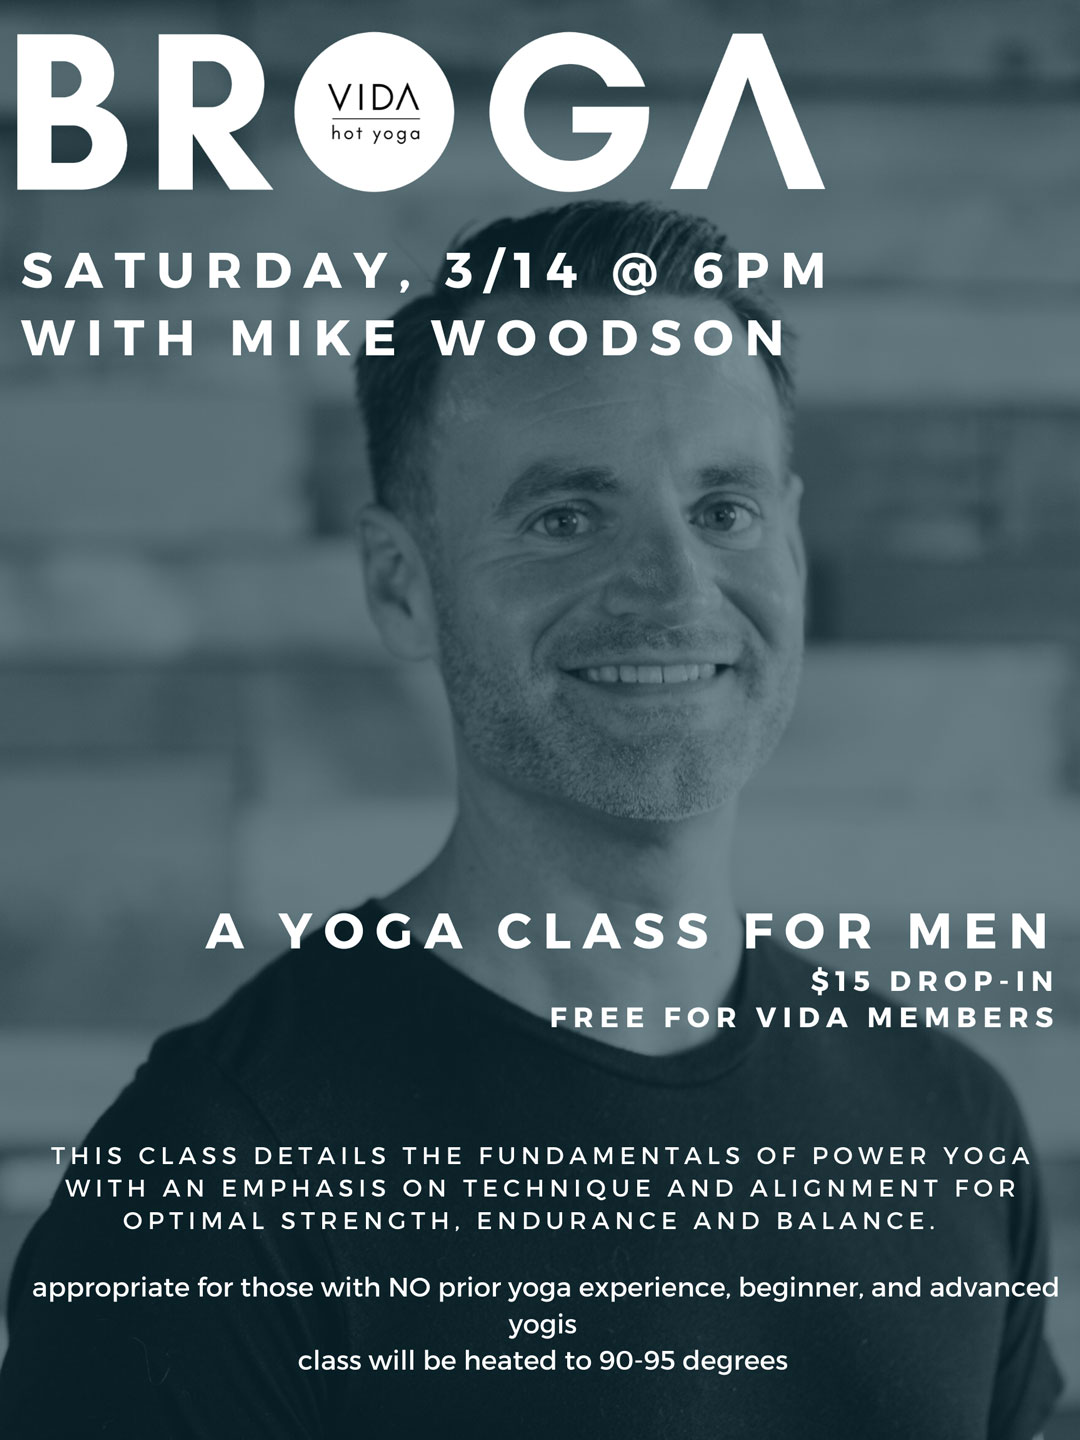 This class details the fundamentals of power yoga with an emphasis on technique and alignment for optimal strength, endurance and balance. Appropriate for those with NO prior yoga experience, beginner and advanced yogis Class will be heated, 90-95 degrees